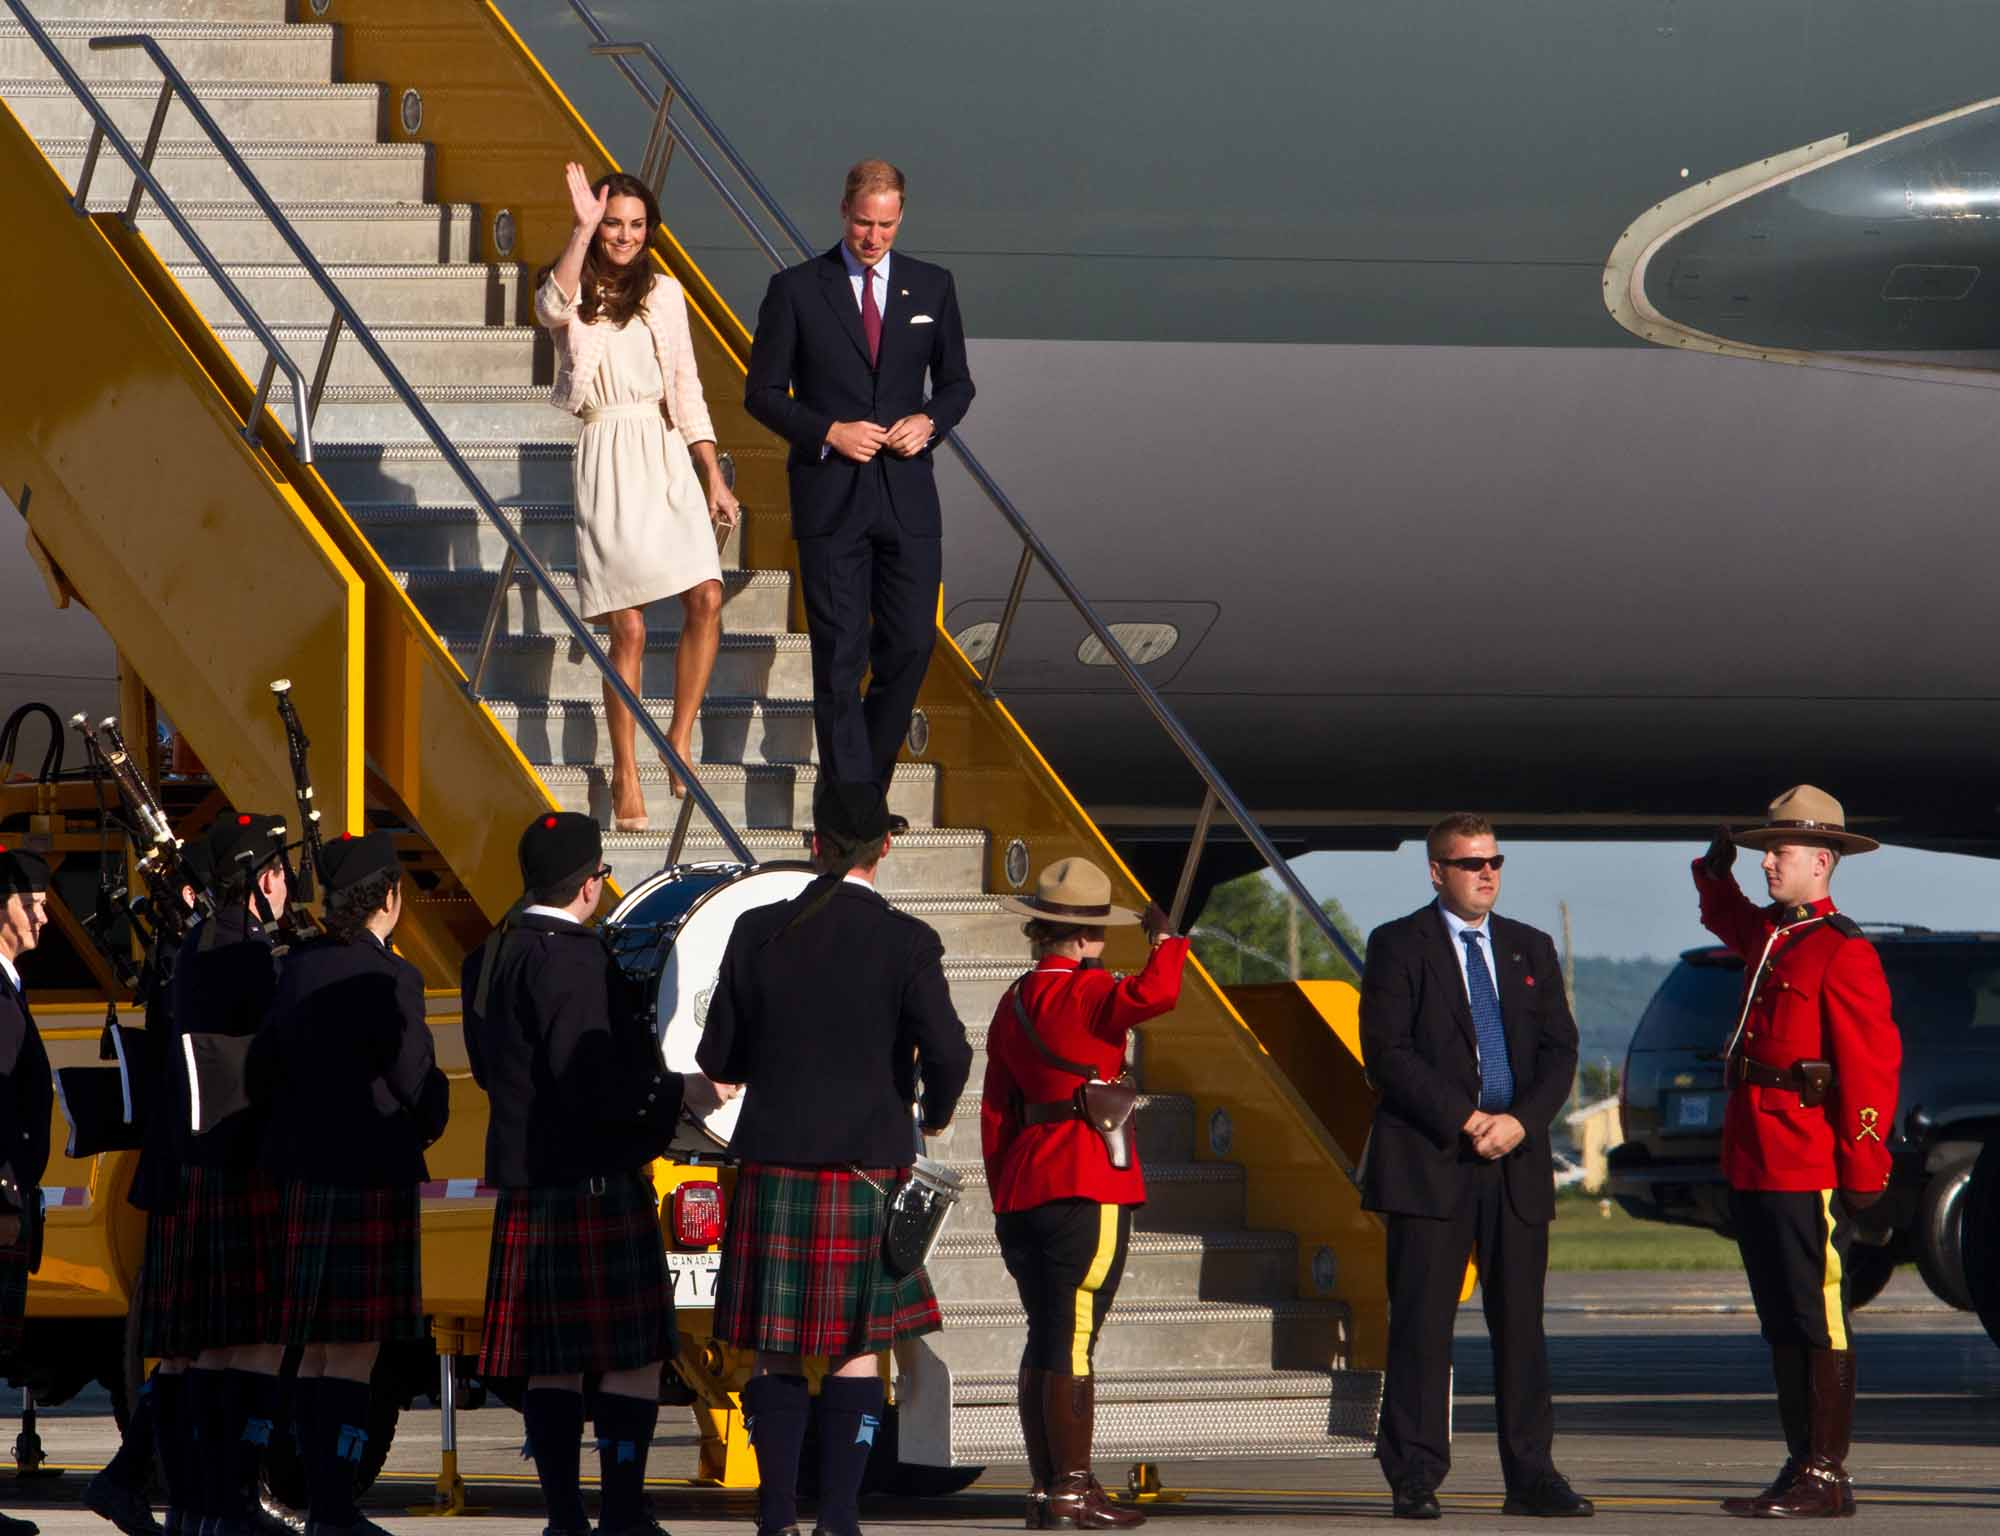 Will & Kate: The Duke and Duchess of Cambridge